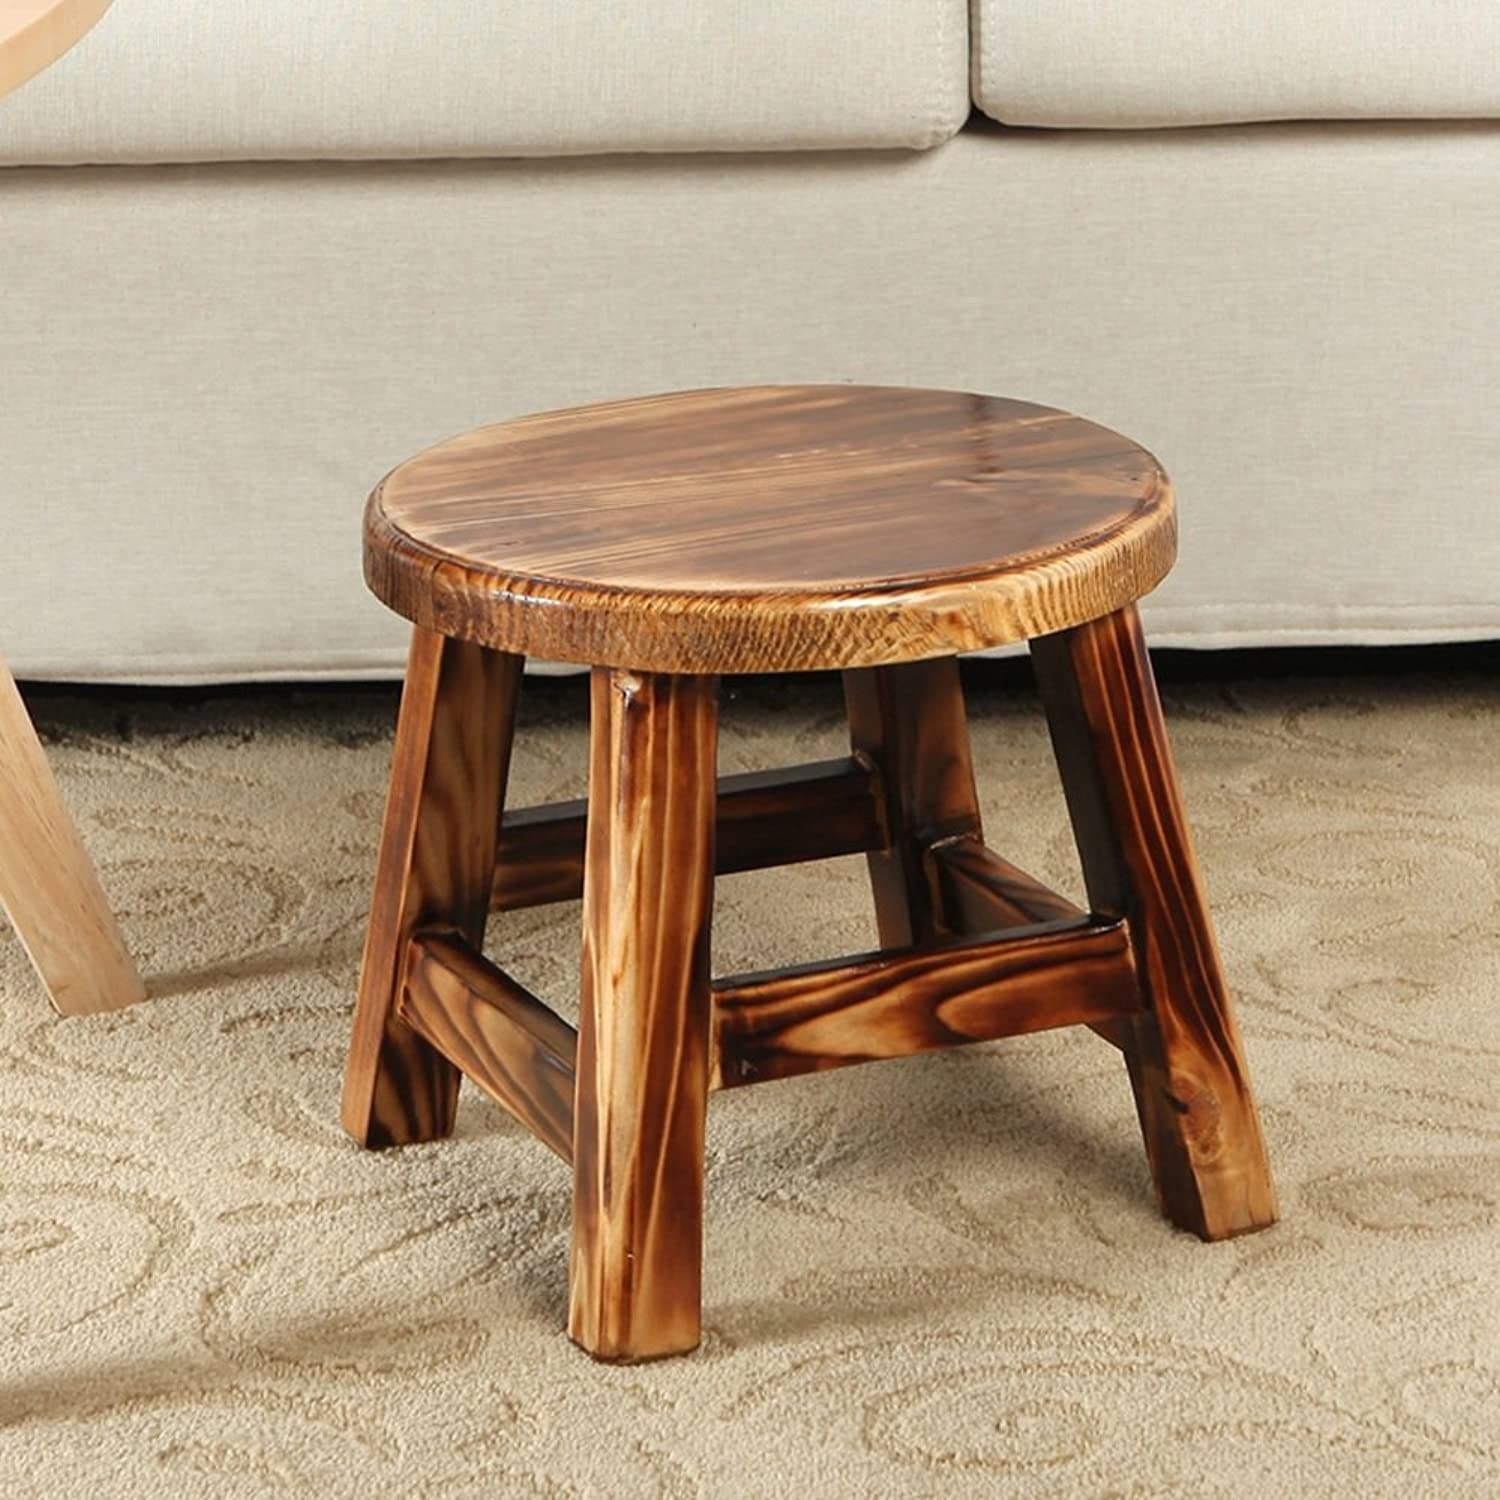 MEIDUO Chairs Coffee Table Stool Adult Sofa Stool Household Solid Wood Stools